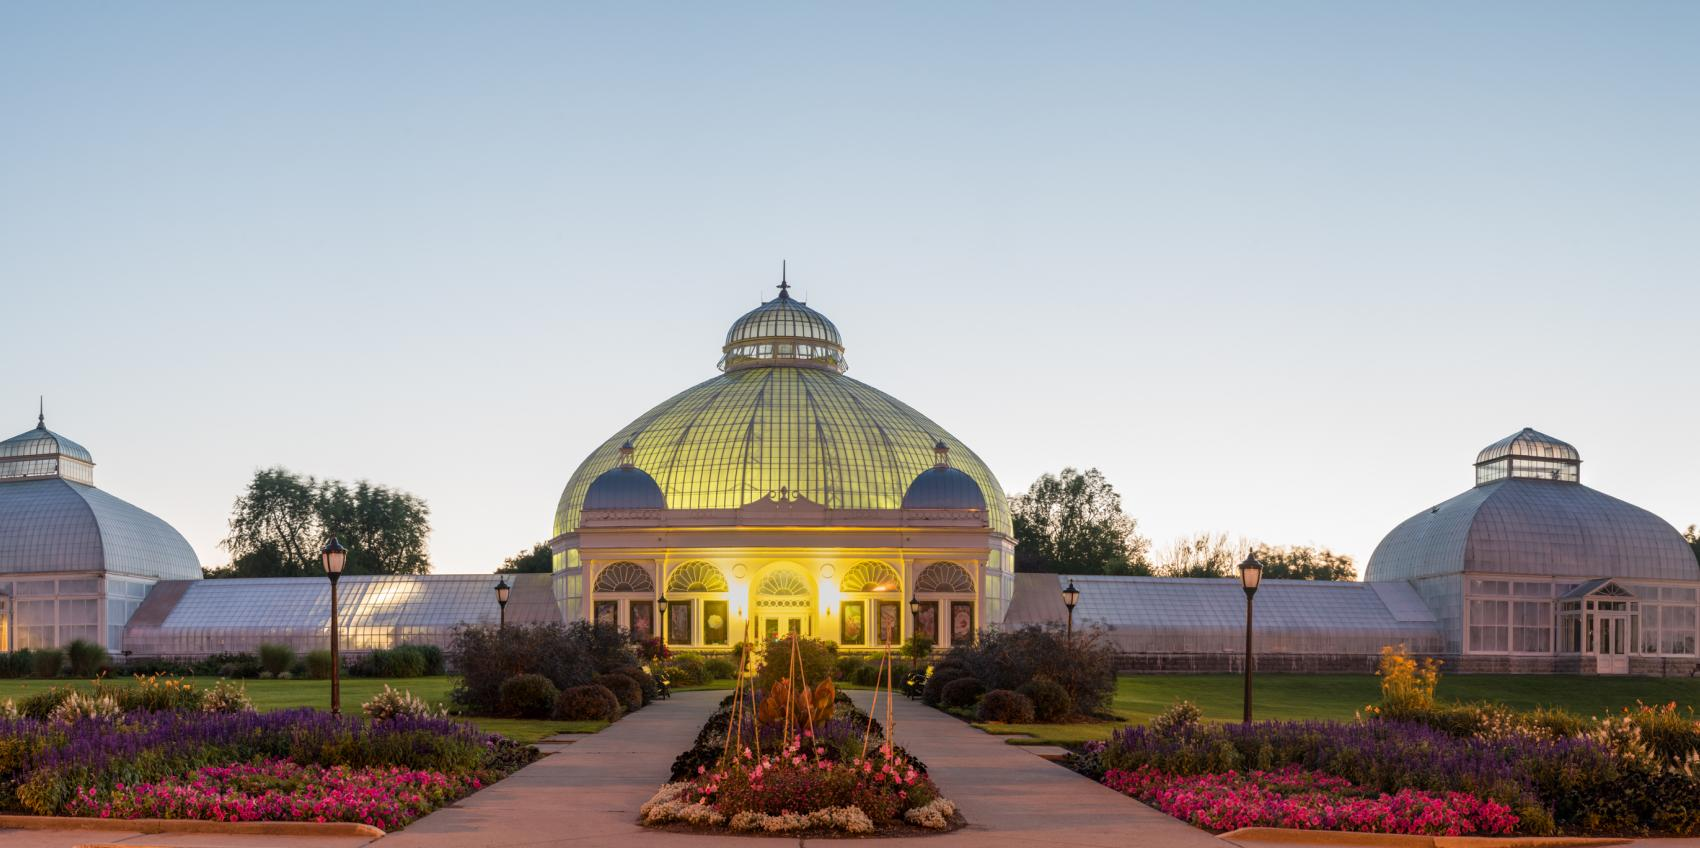 The Buffalo And Erie County Botanical Gardens Is A National Historic Site,  Education Center And Tourist Destination Full Of Exotic Horticulture  Treasures ...